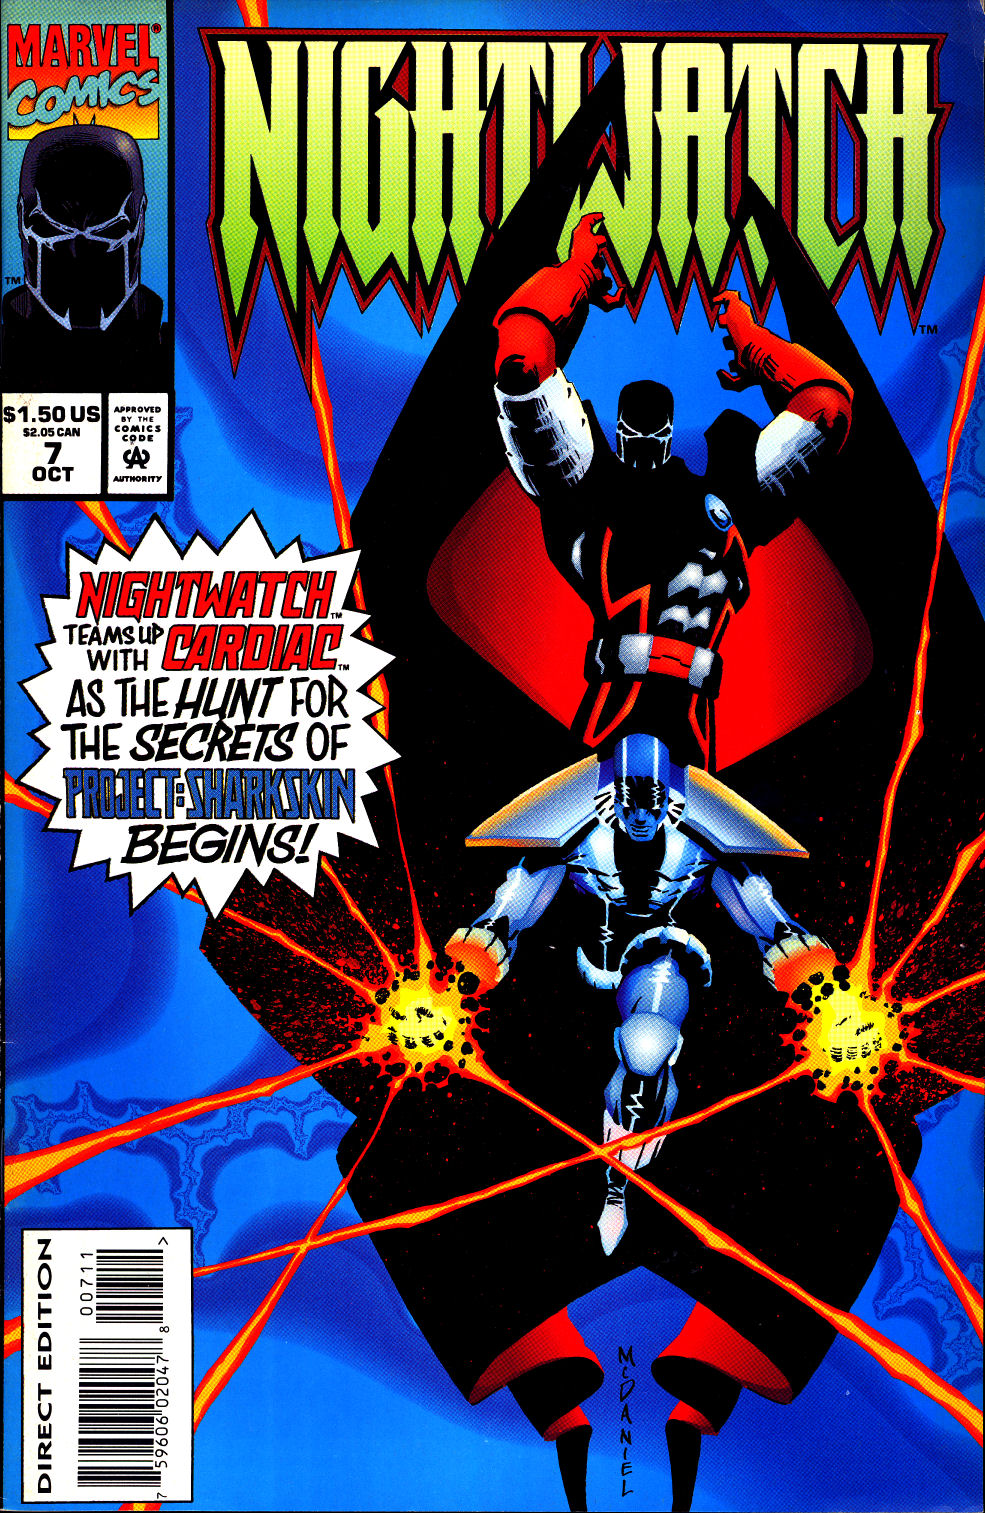 Nightwatch 007 (1994) | Viewcomic reading comics online for